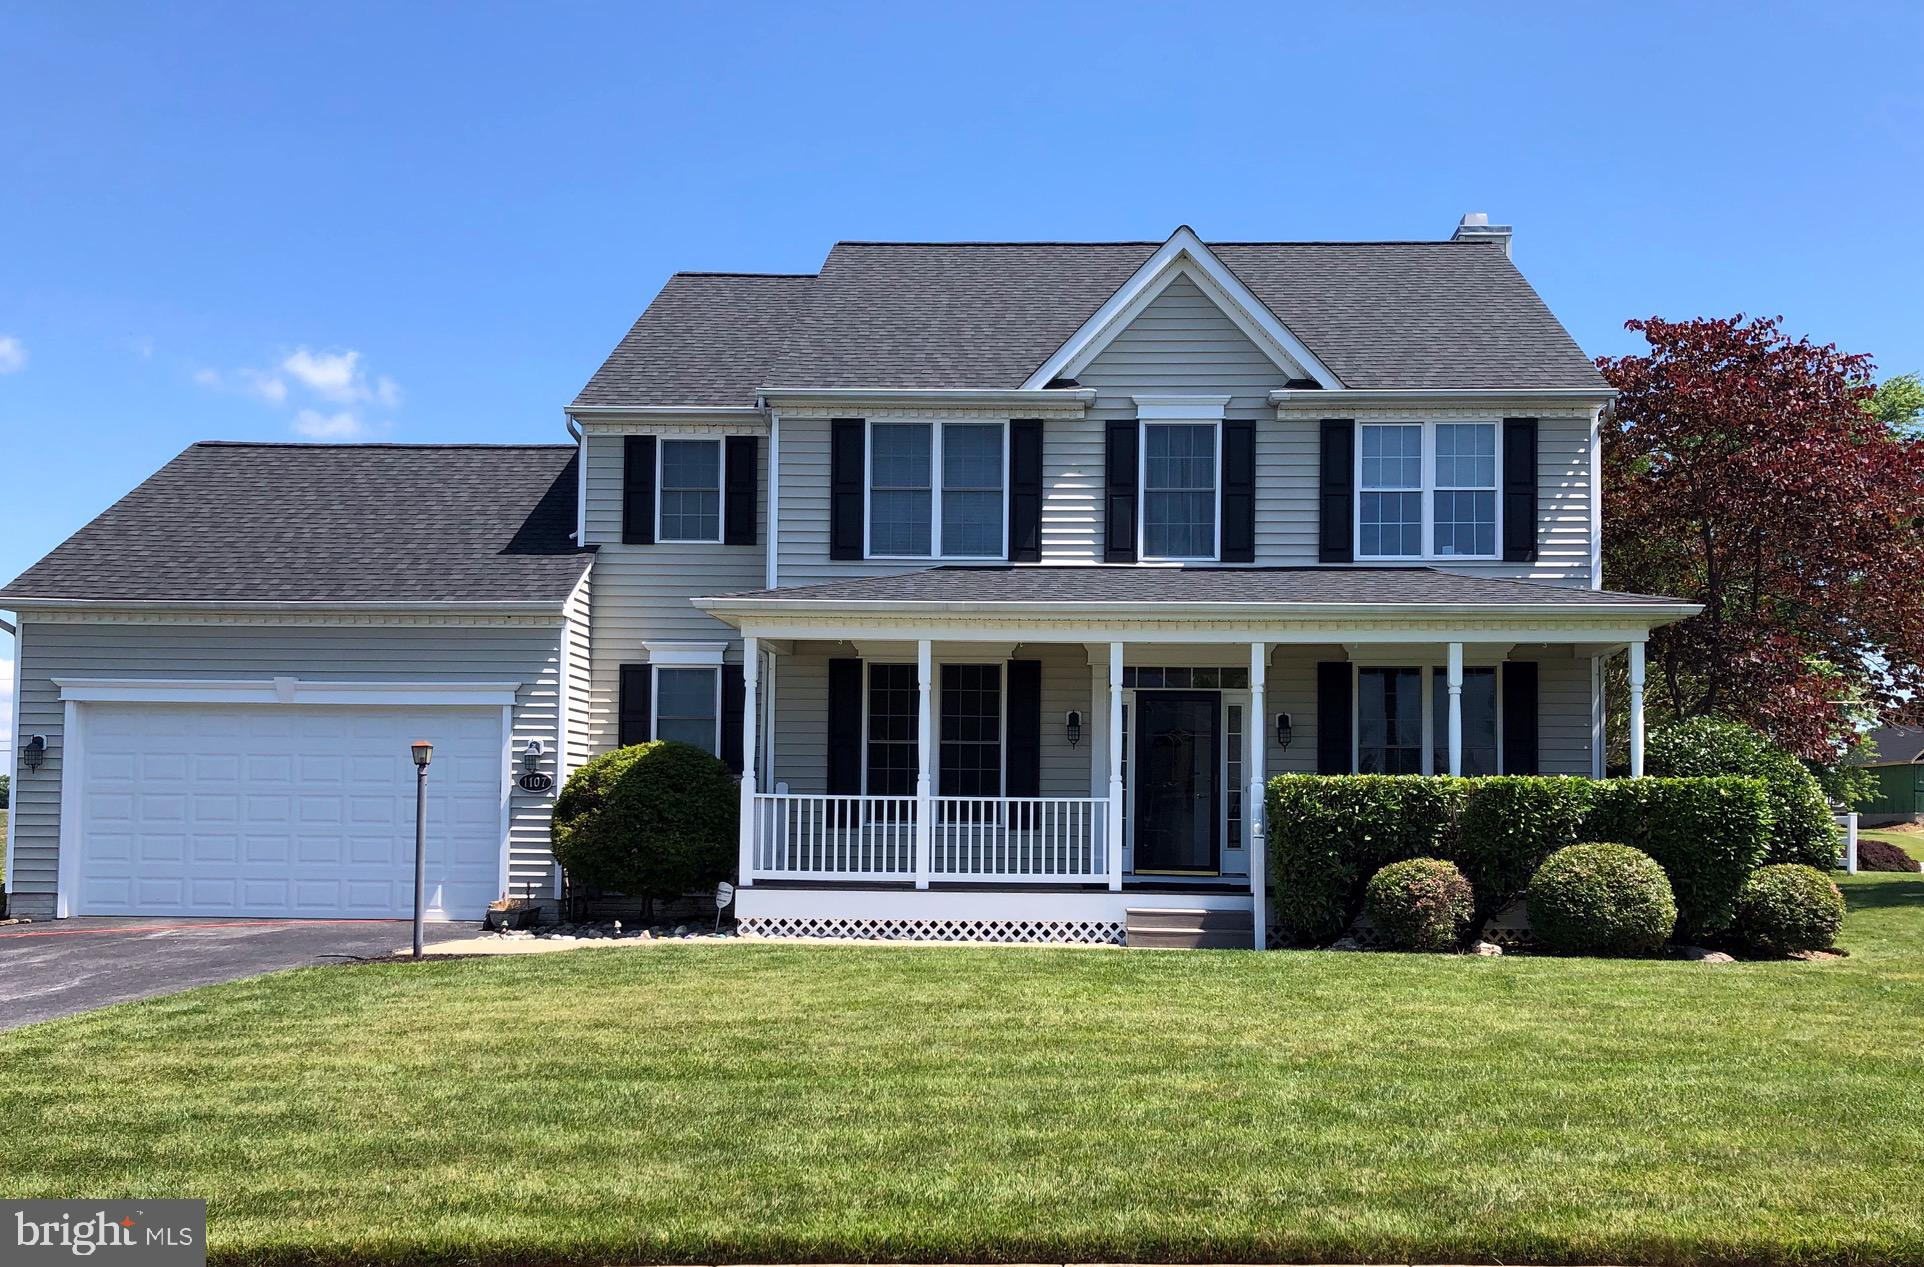 Beautifully maintained colonial with front porch and rear deck on level lot.  Updated kitchen opens